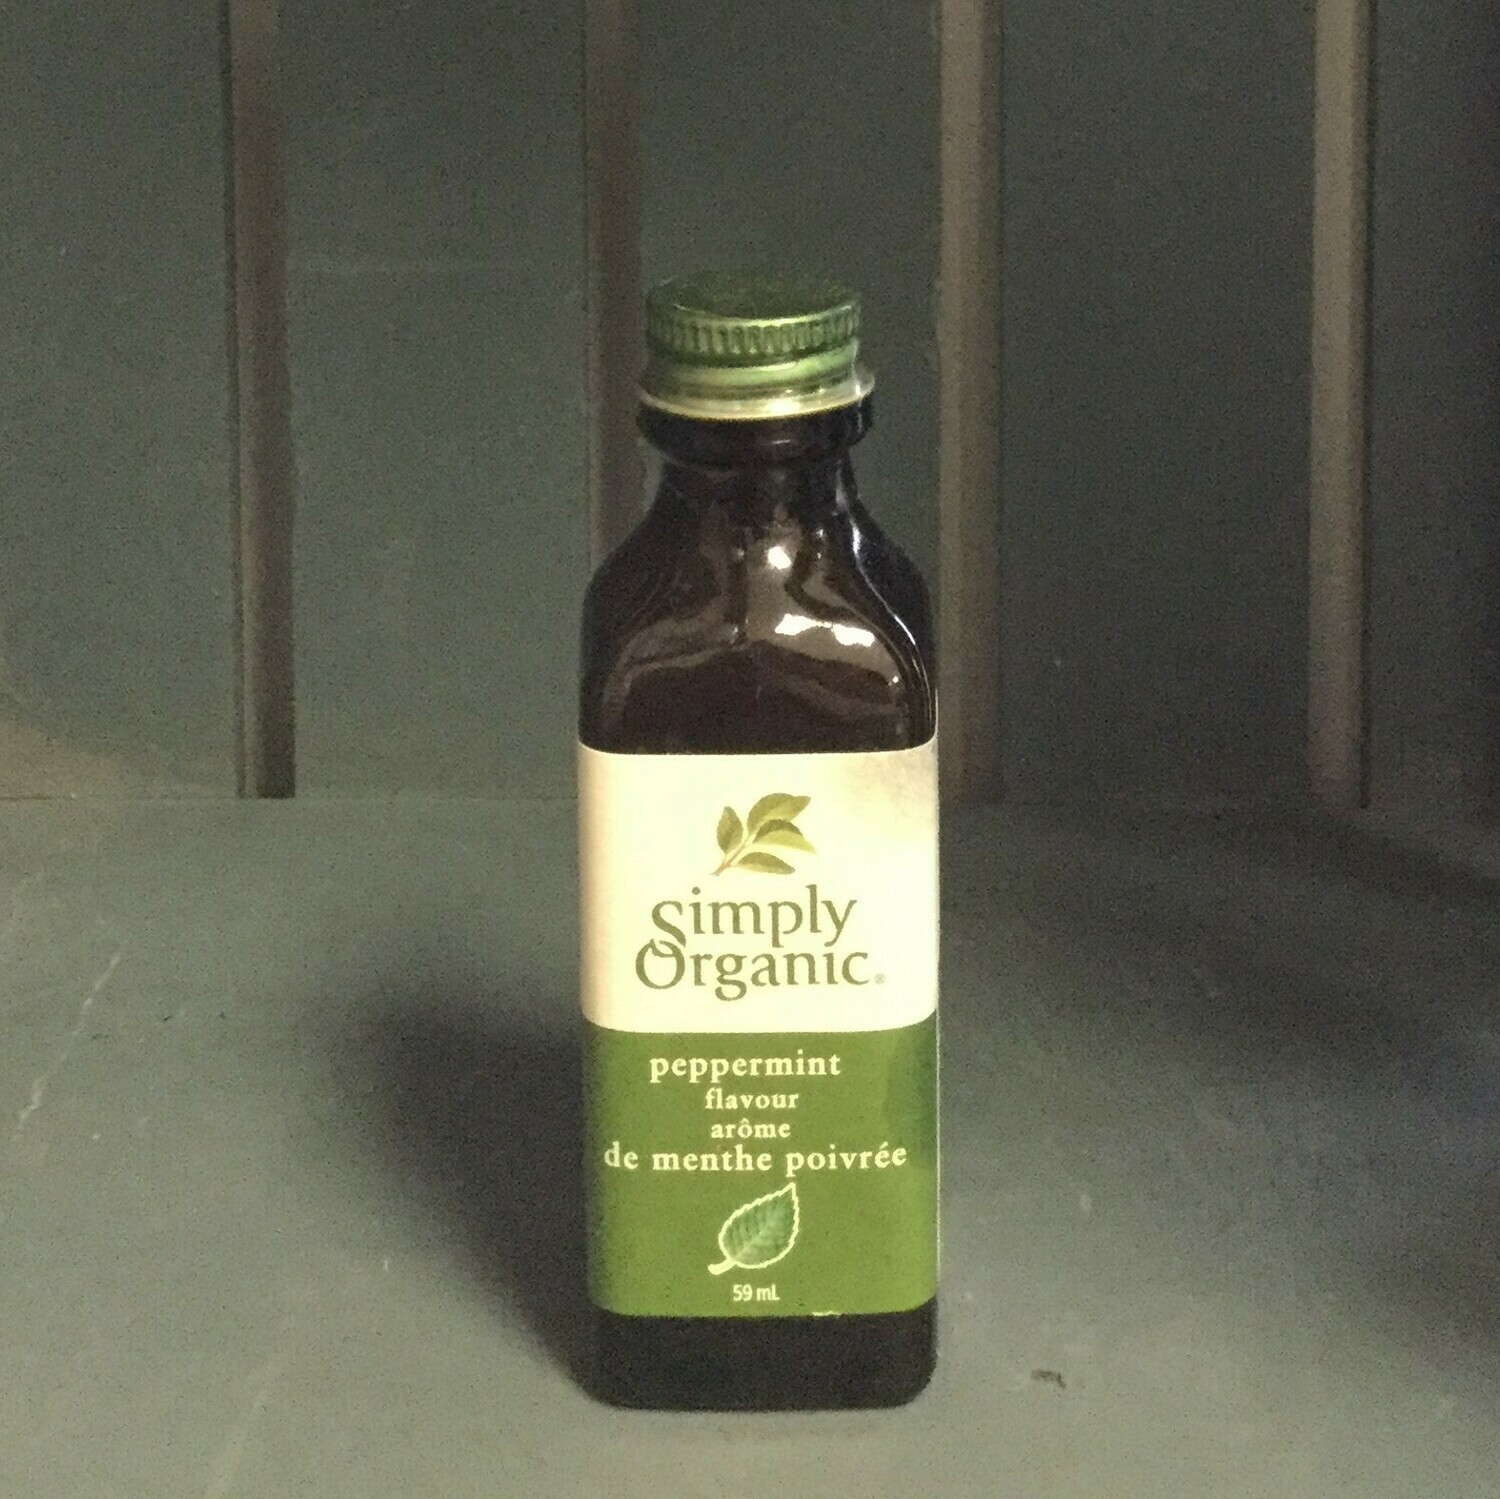 SIMPLY ORGANIC Peppermint Extract 59ml